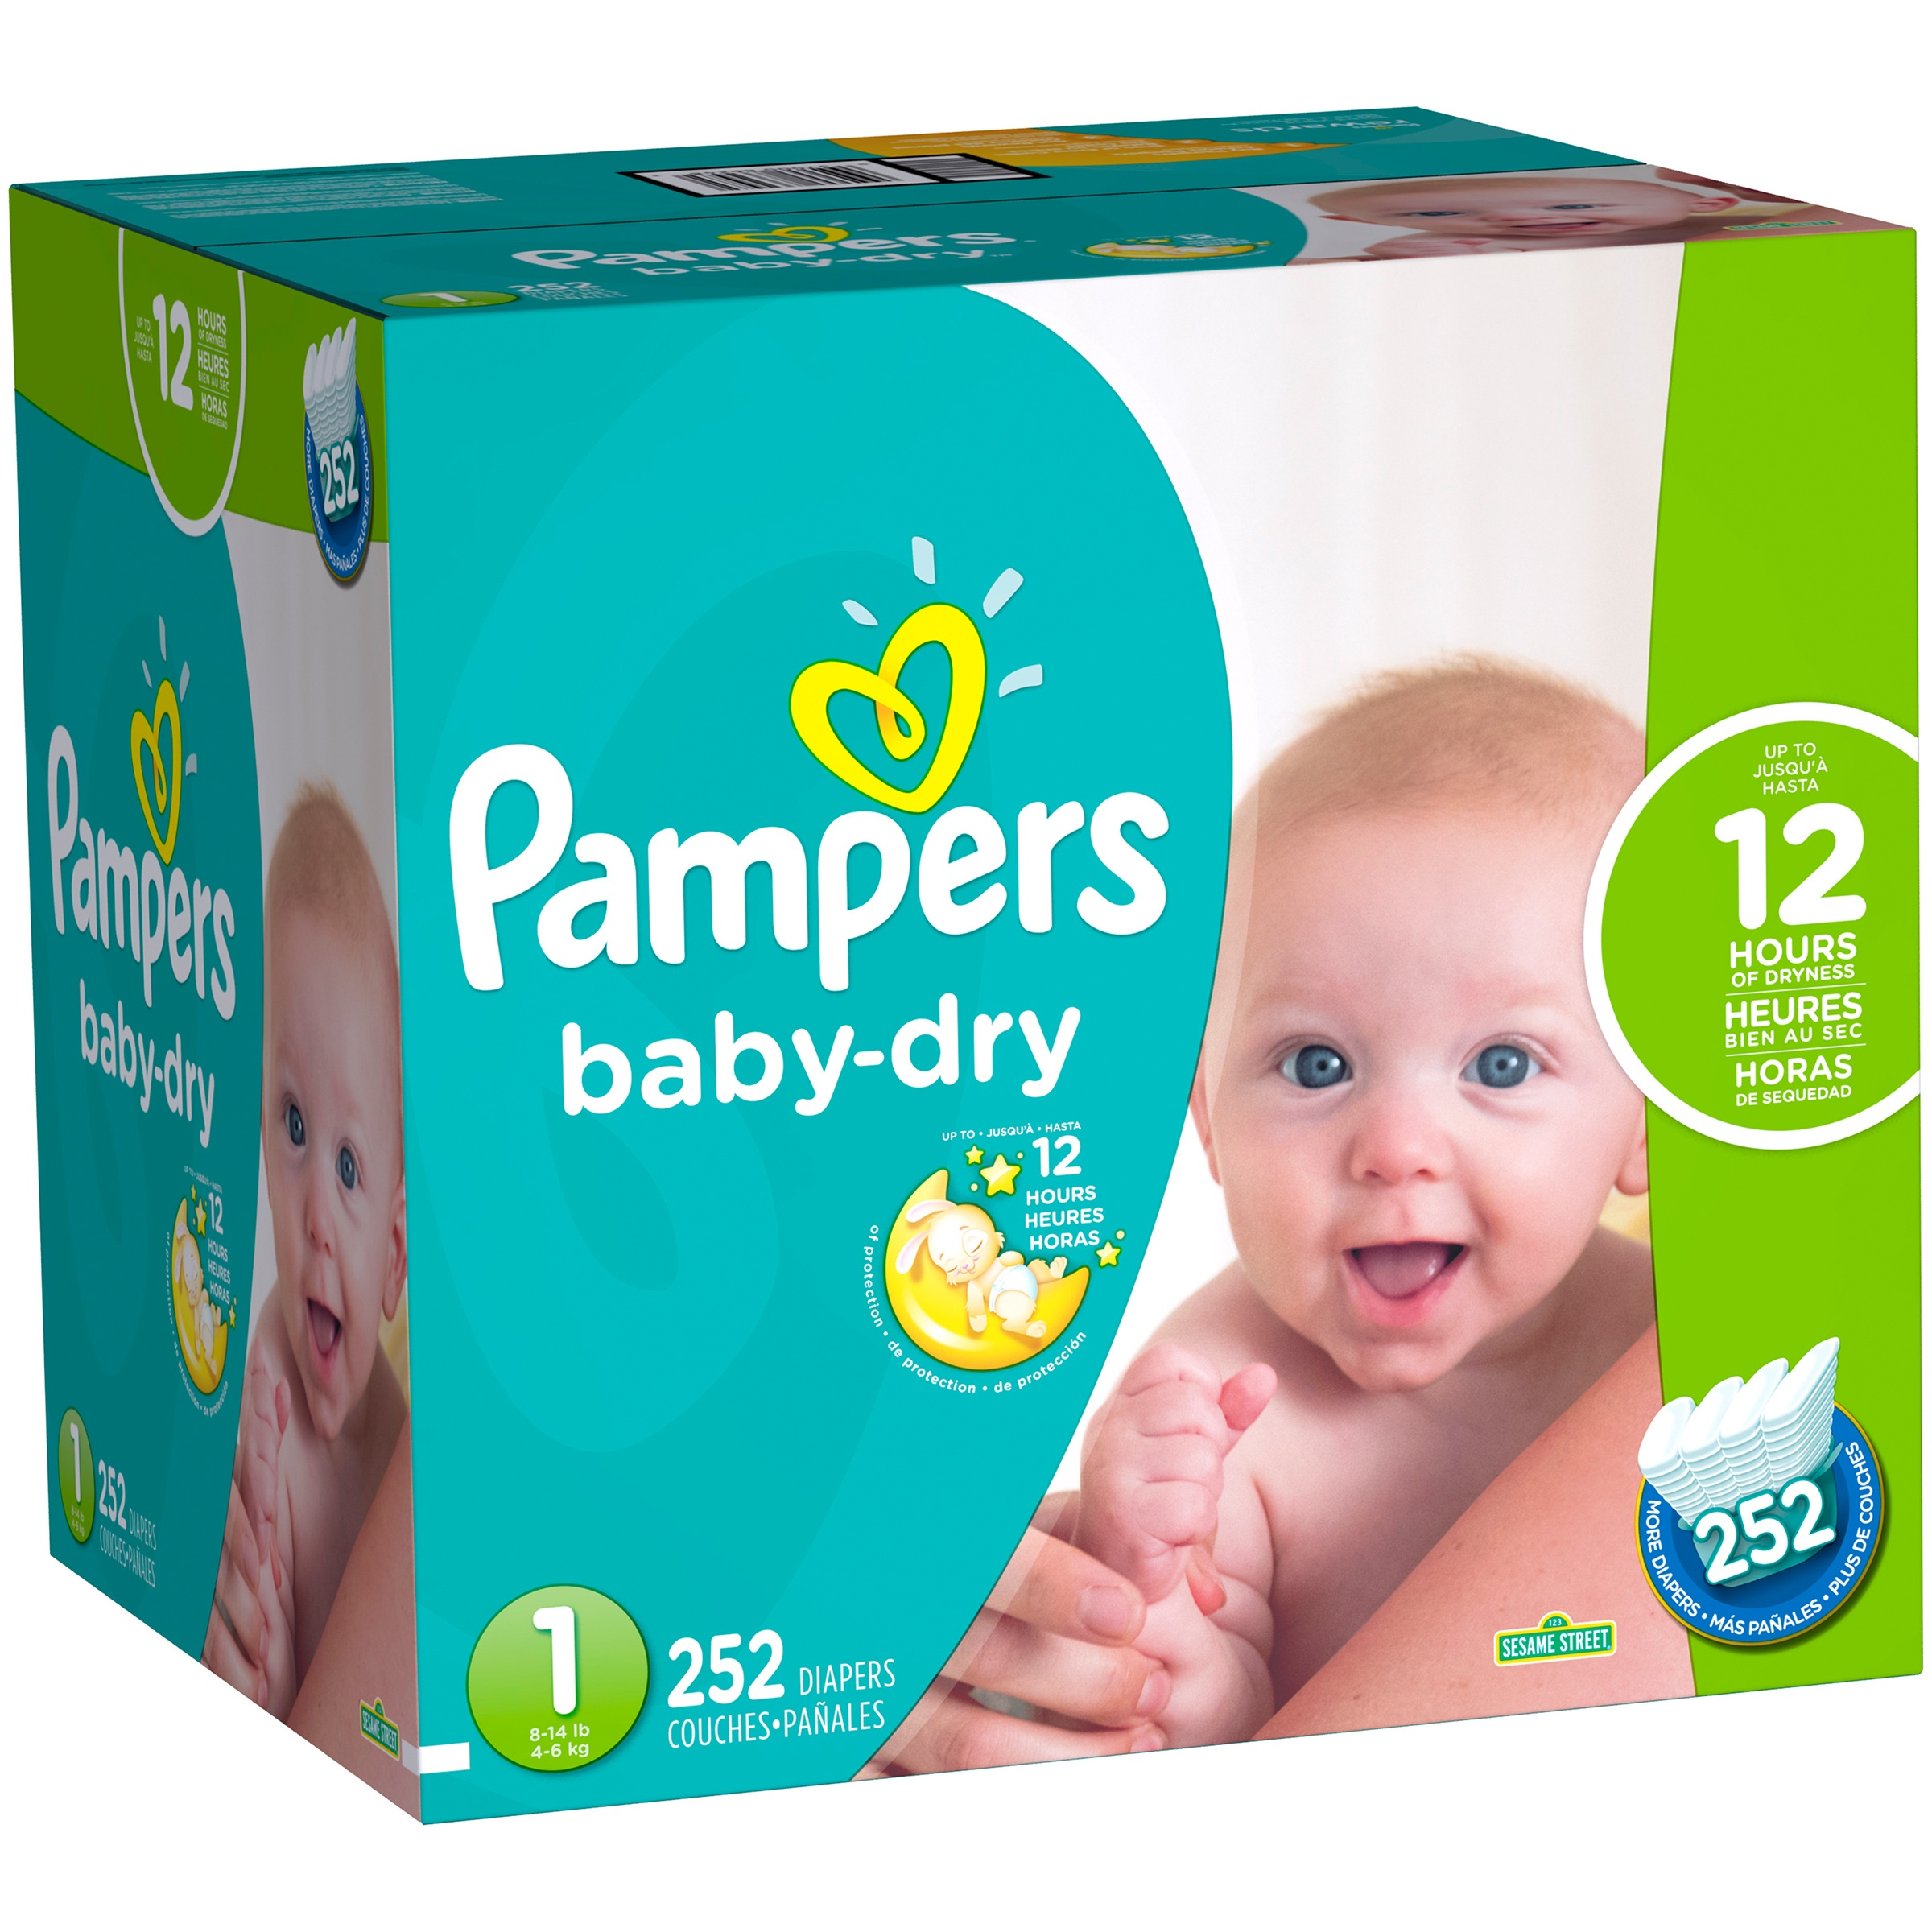 Pampers Baby Dry Diapers, Size 1, 252 Diapers